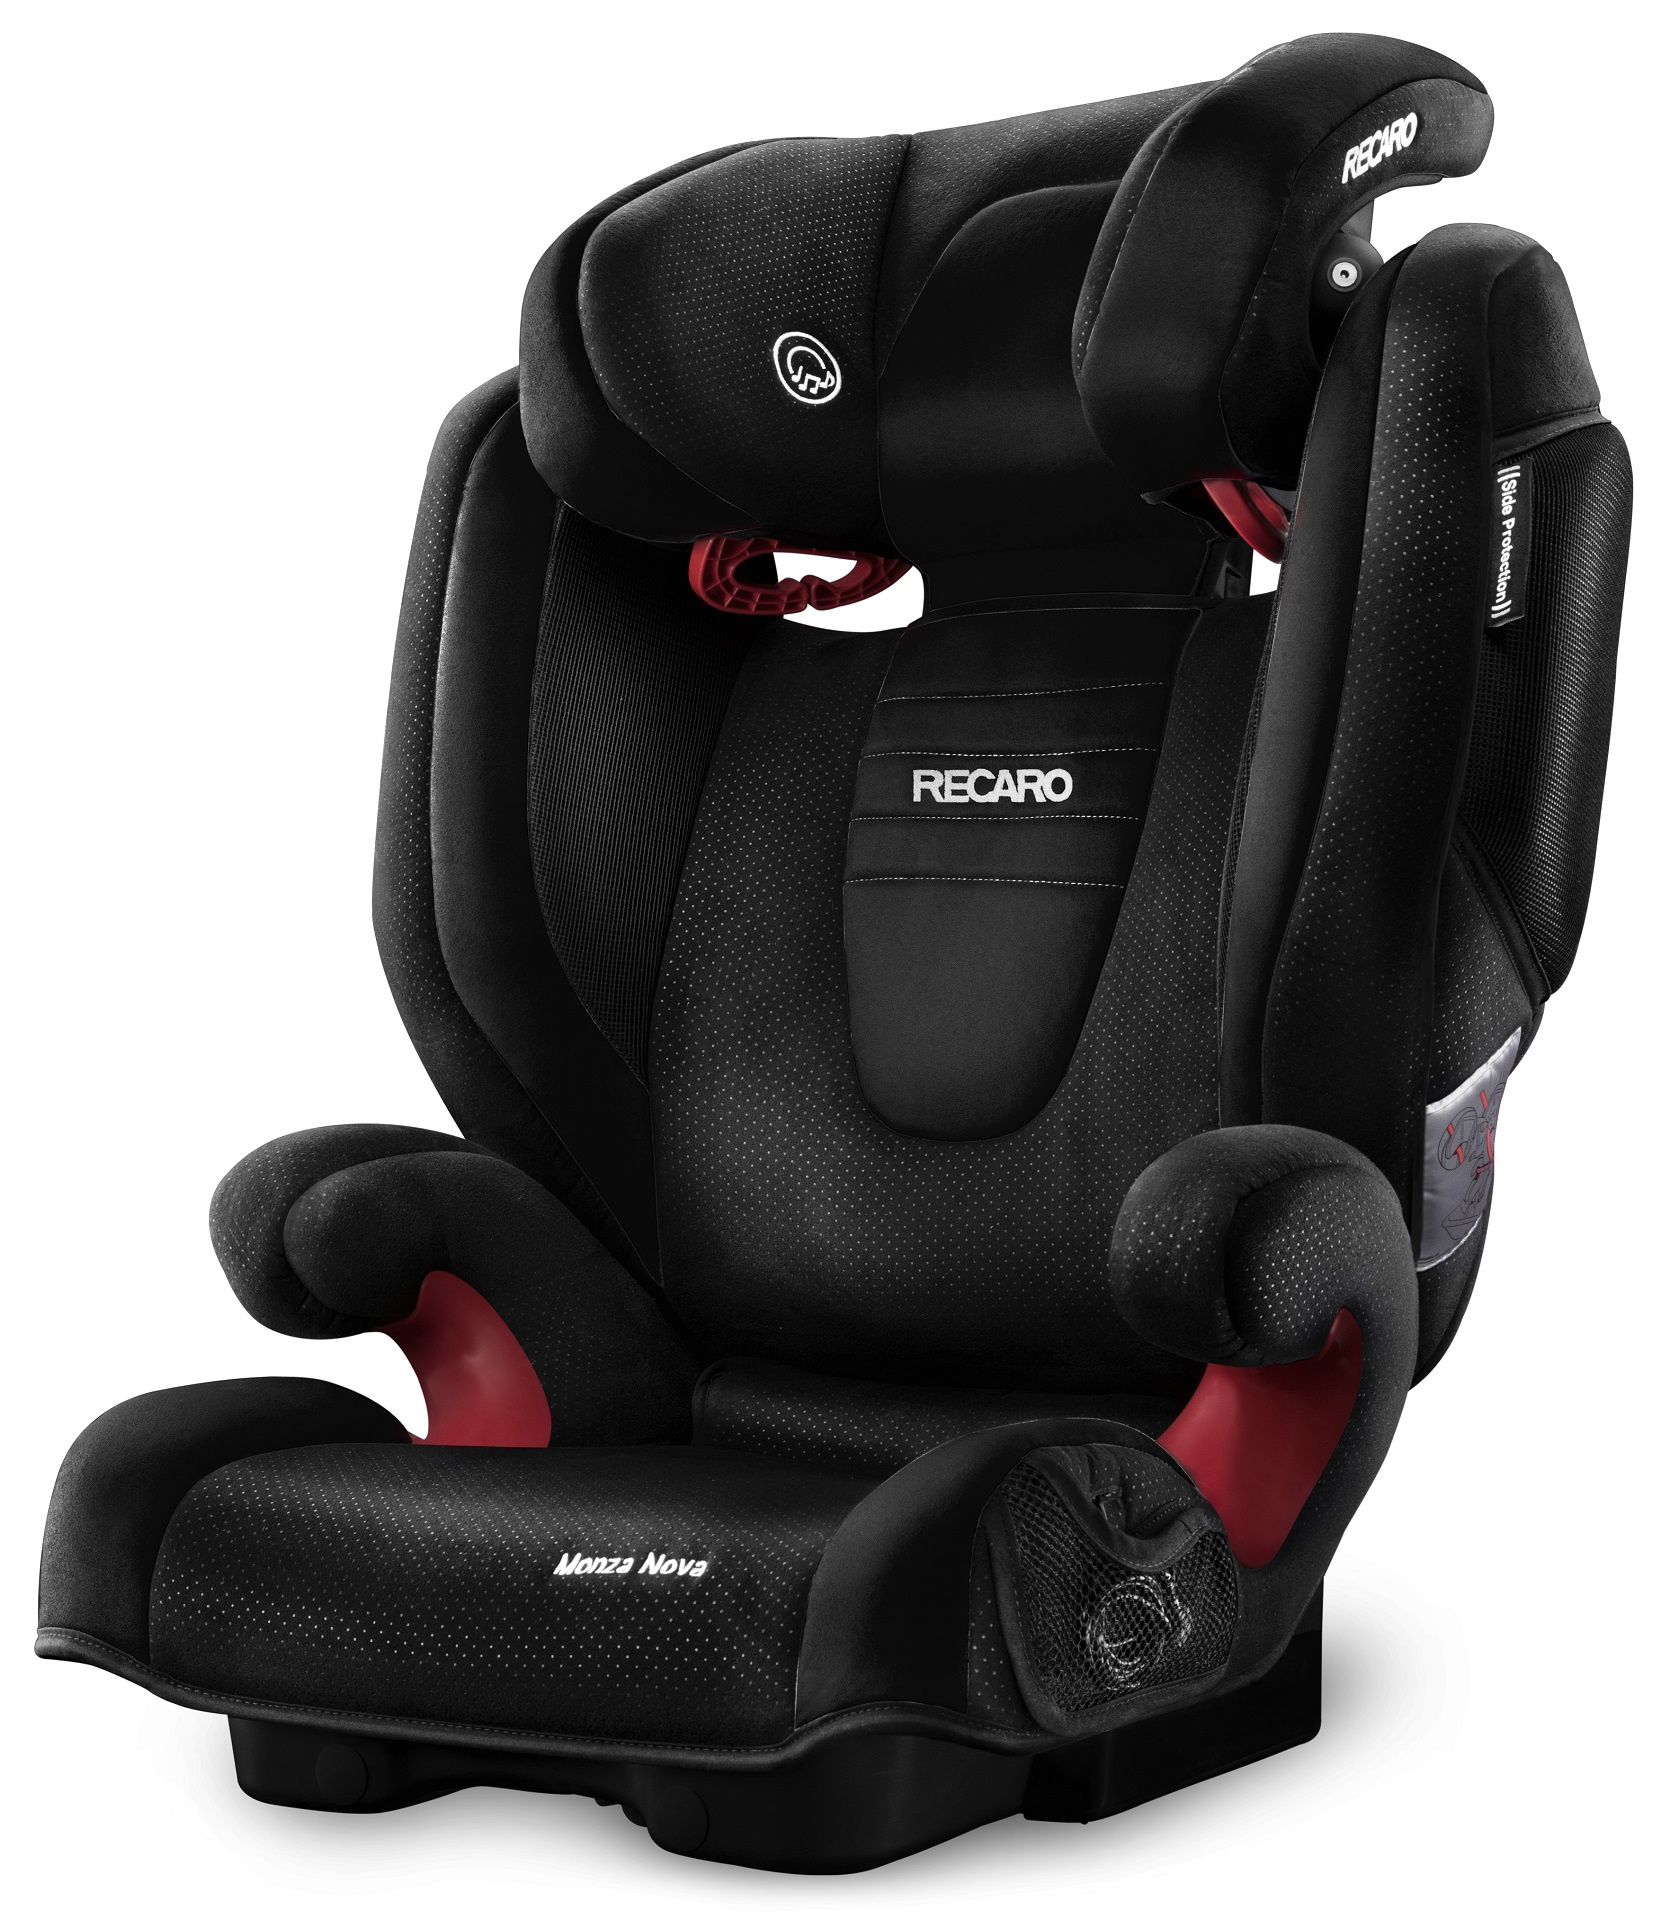 recaro child car seat monza nova 2 2016 black buy at kidsroom car seats. Black Bedroom Furniture Sets. Home Design Ideas